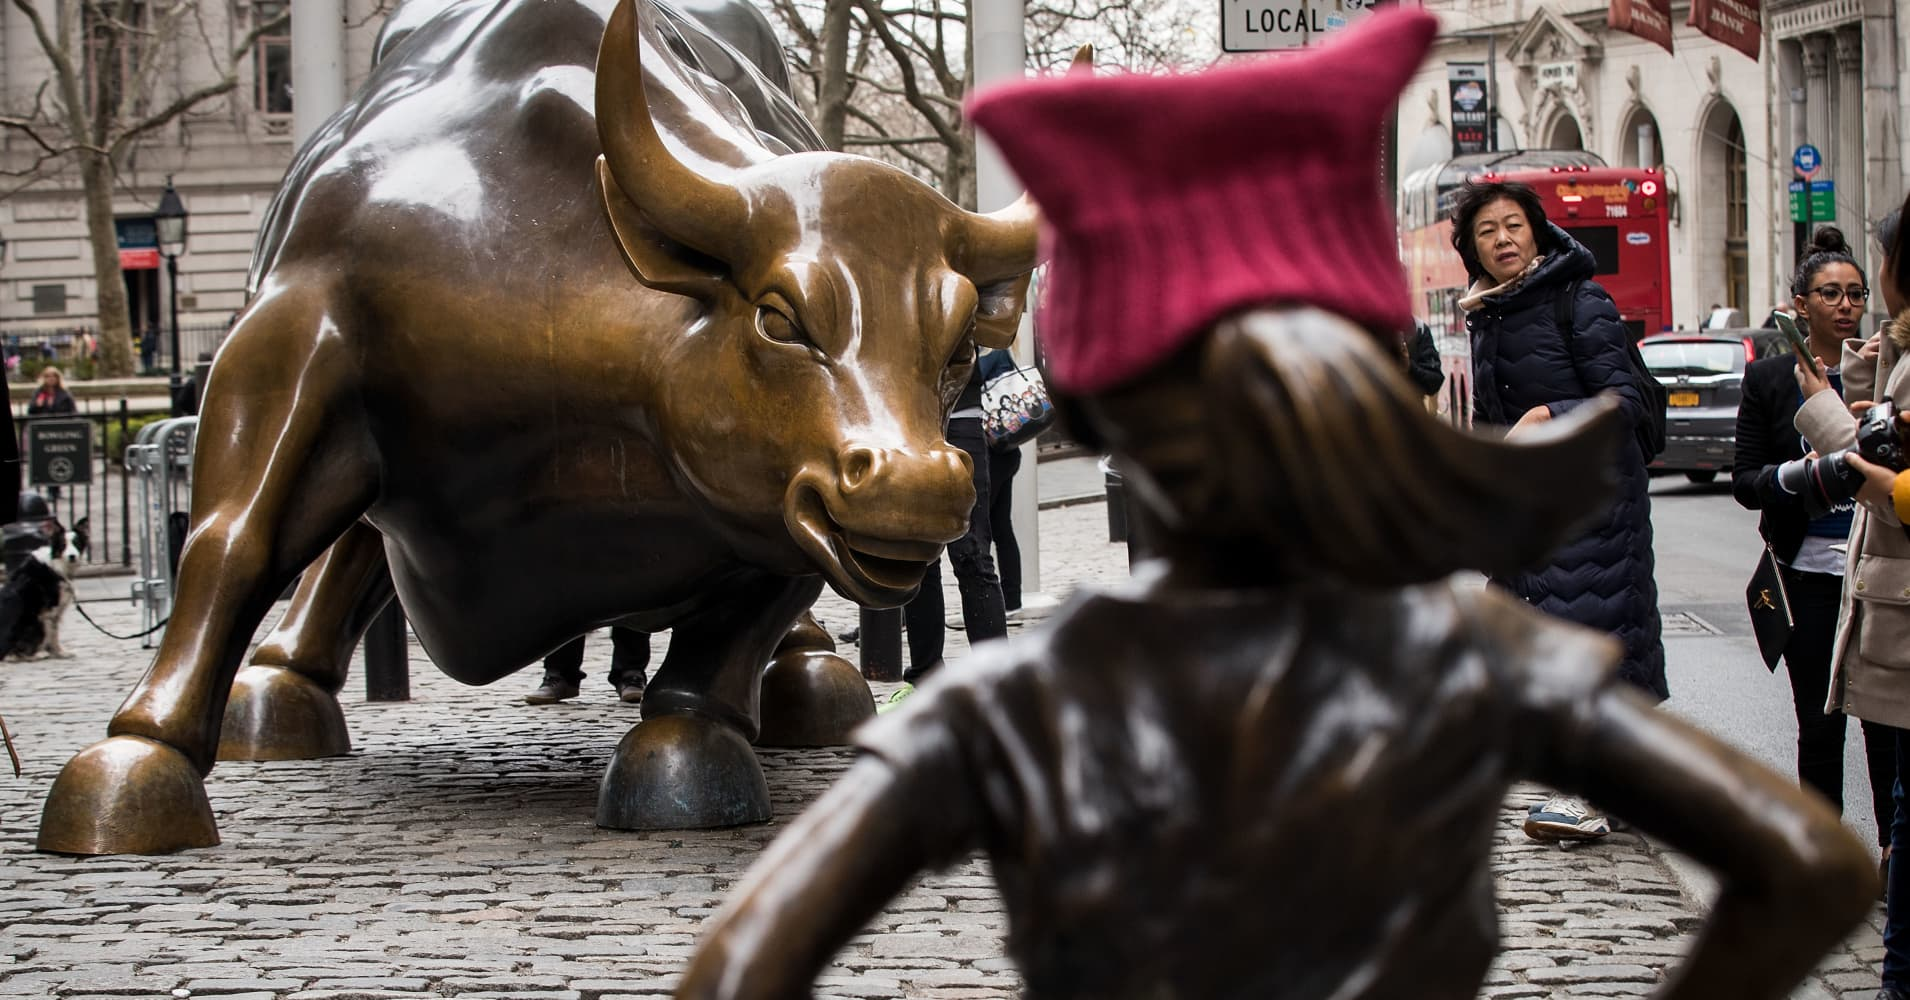 'The Fearless Girl' statues stands across from the iconic Wall Street charging bull statue, March 8, 2017 in New York City.